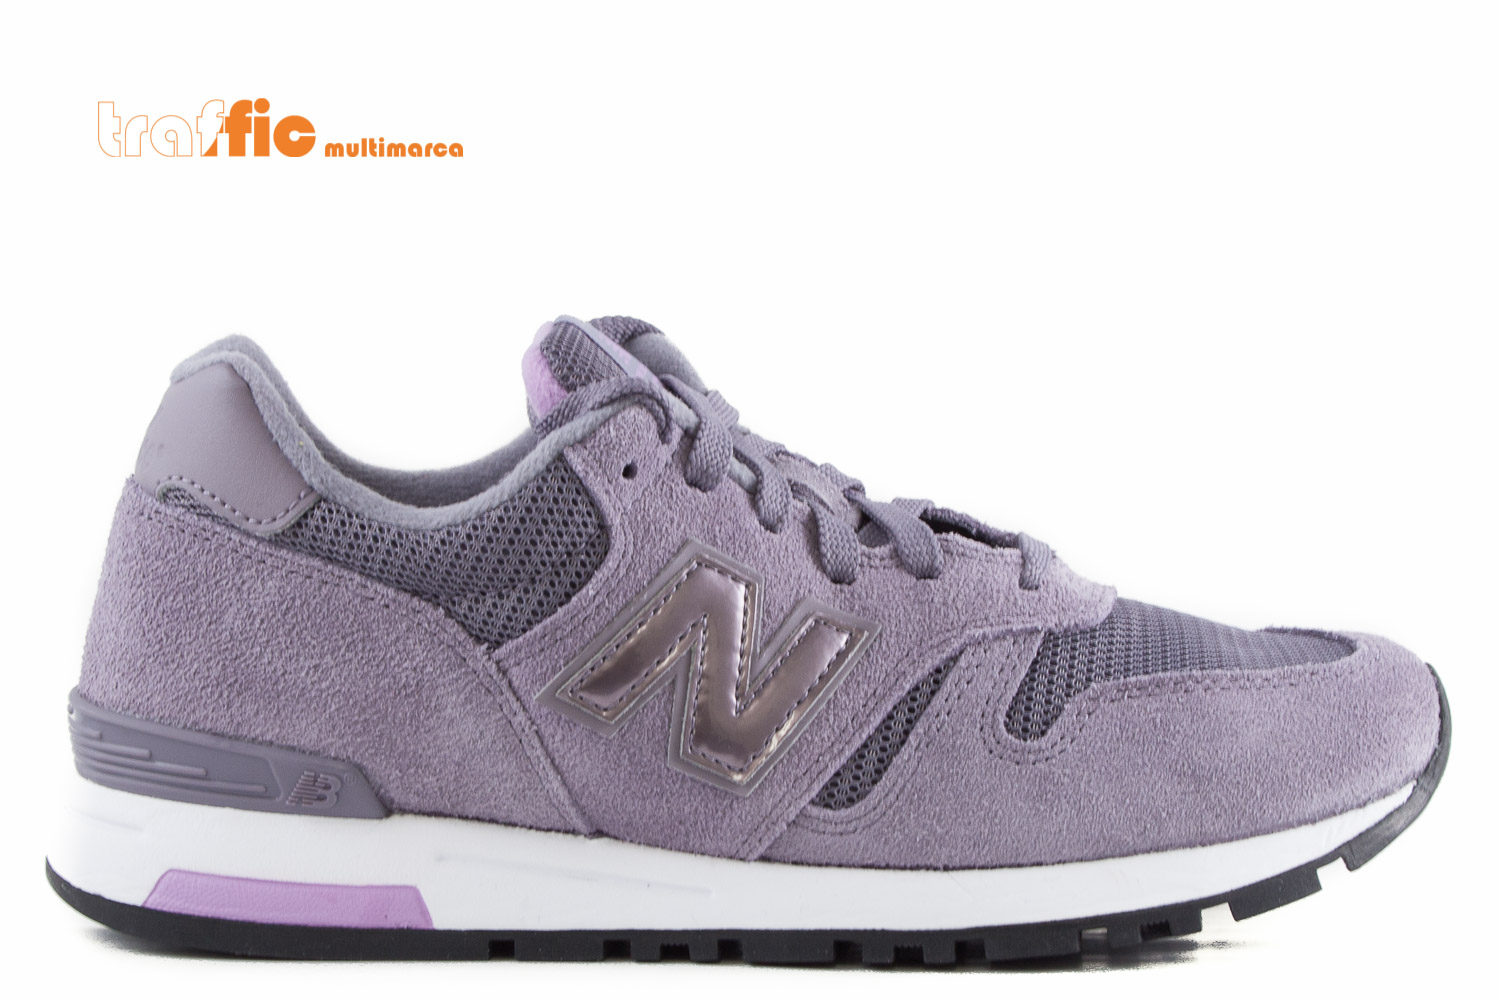 New Balance 565 Zapatillas de correr